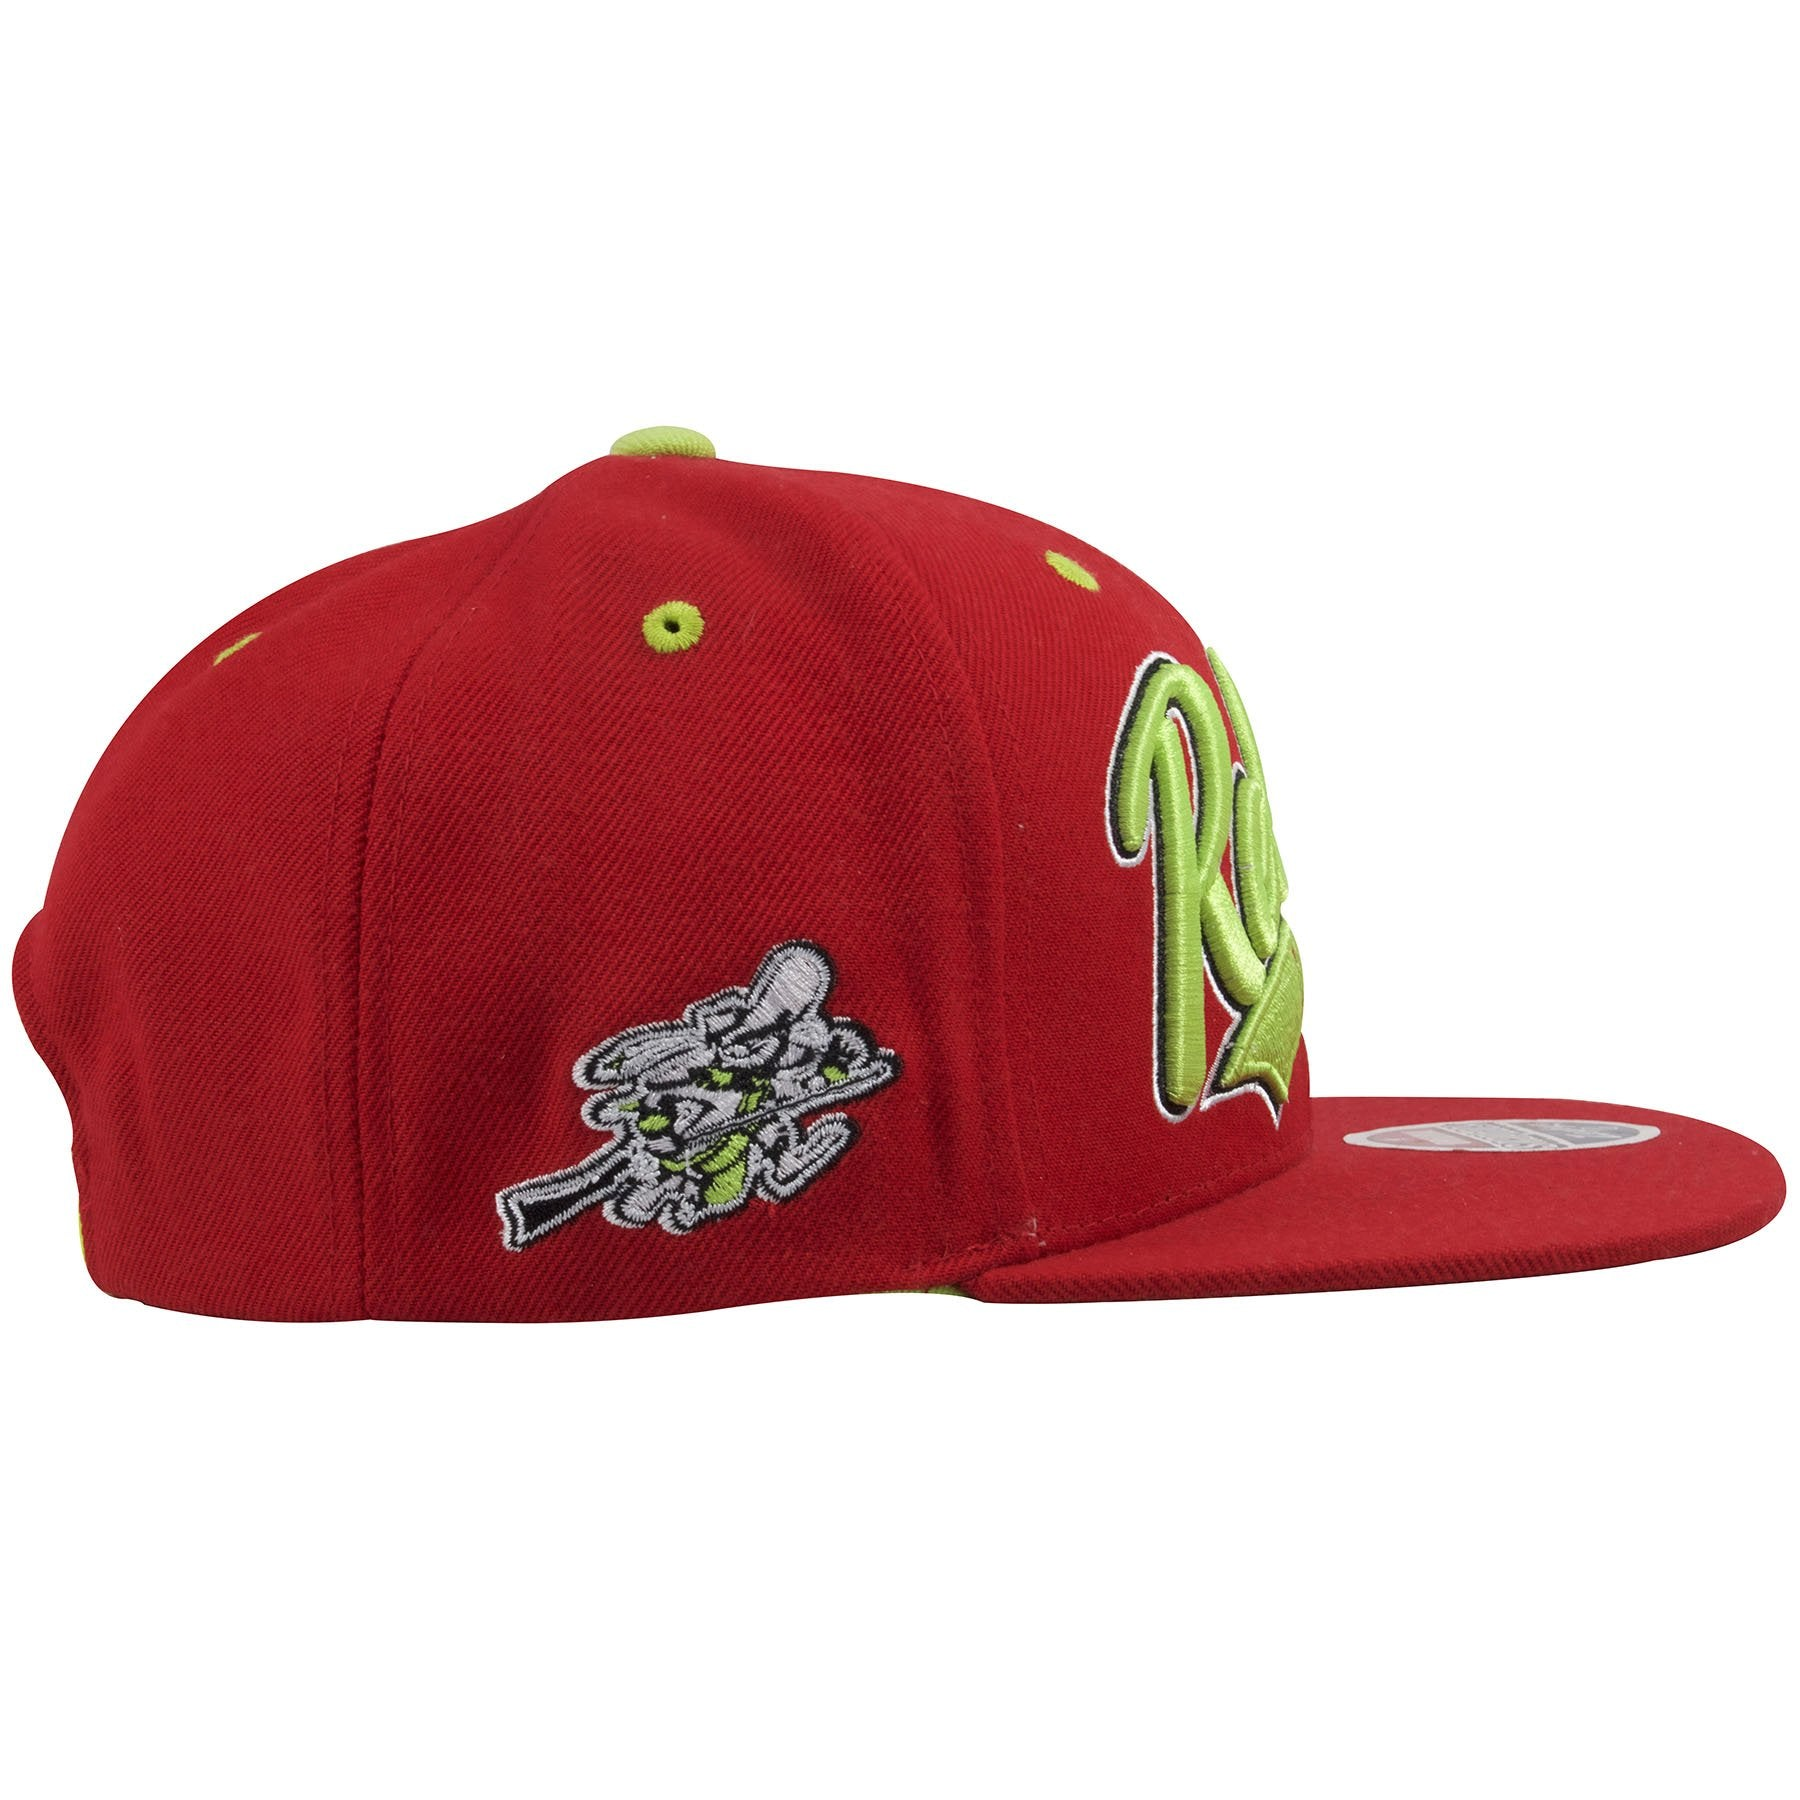 ... the right side of the unlv runnin rebels solid red snapback hat is the runnin  rebels ... b16dd5615f9b